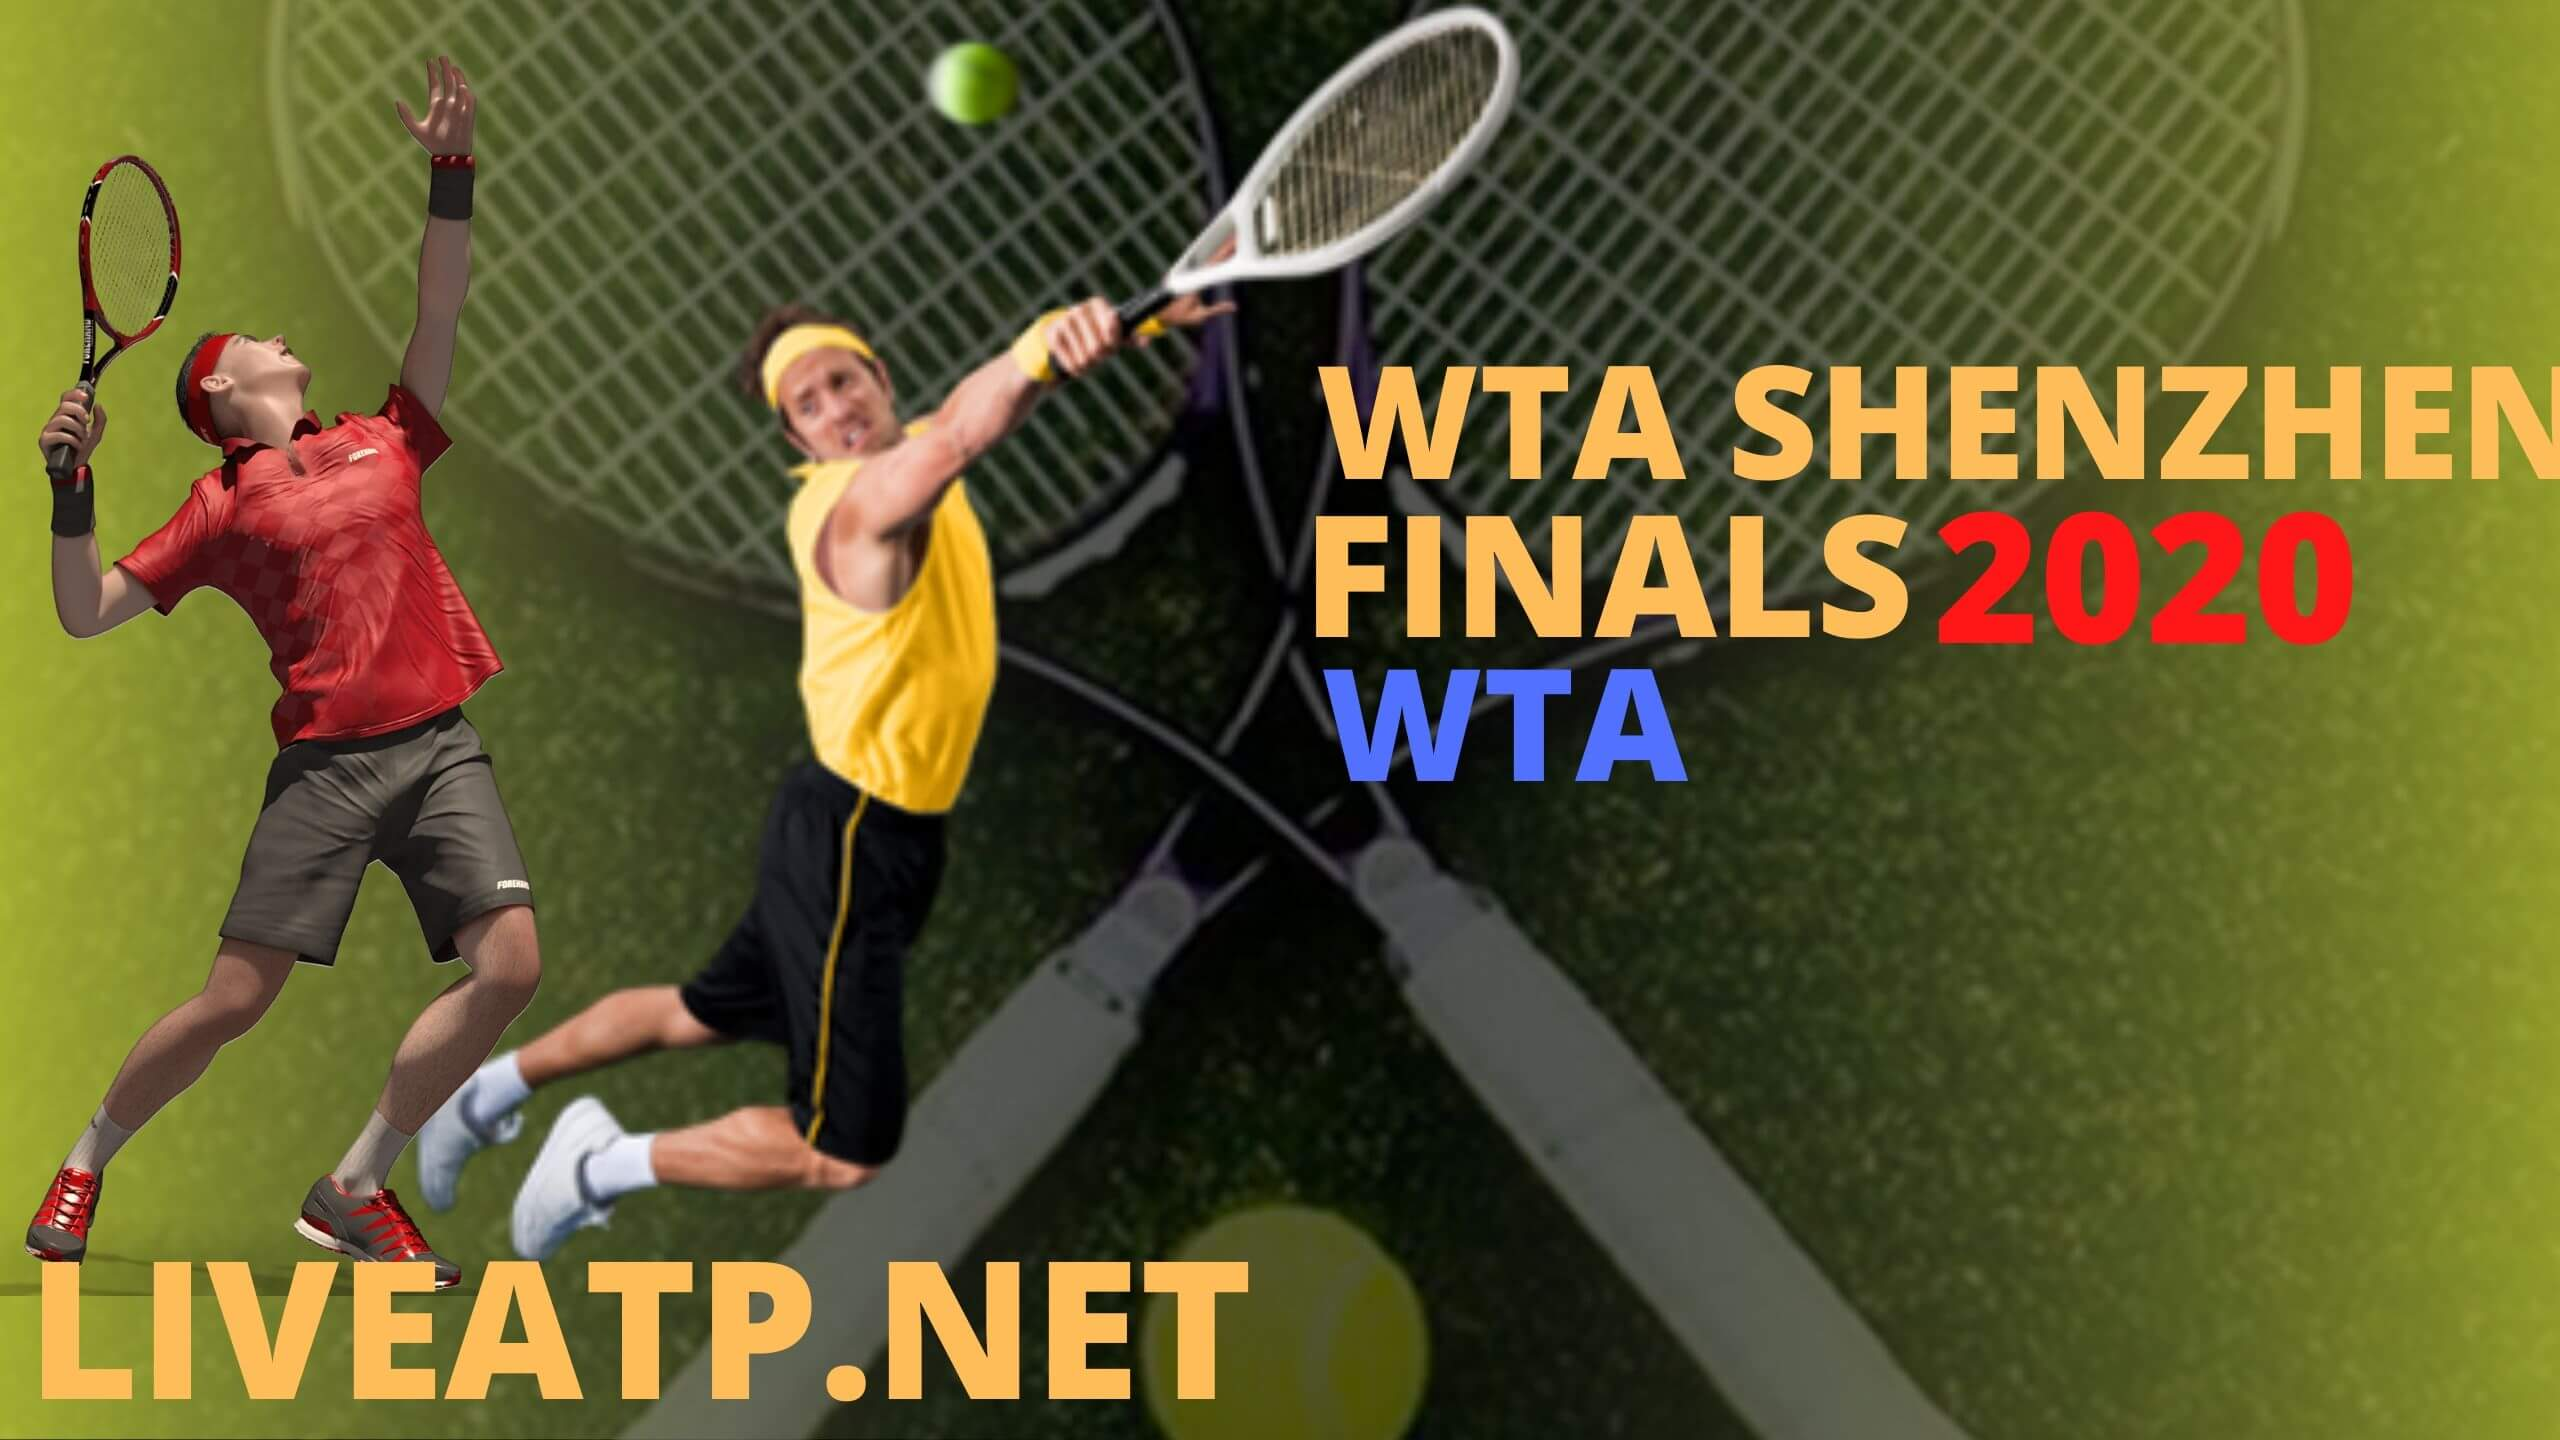 WTA Shenzhen FINALS Live Stream 2020 | Day 4